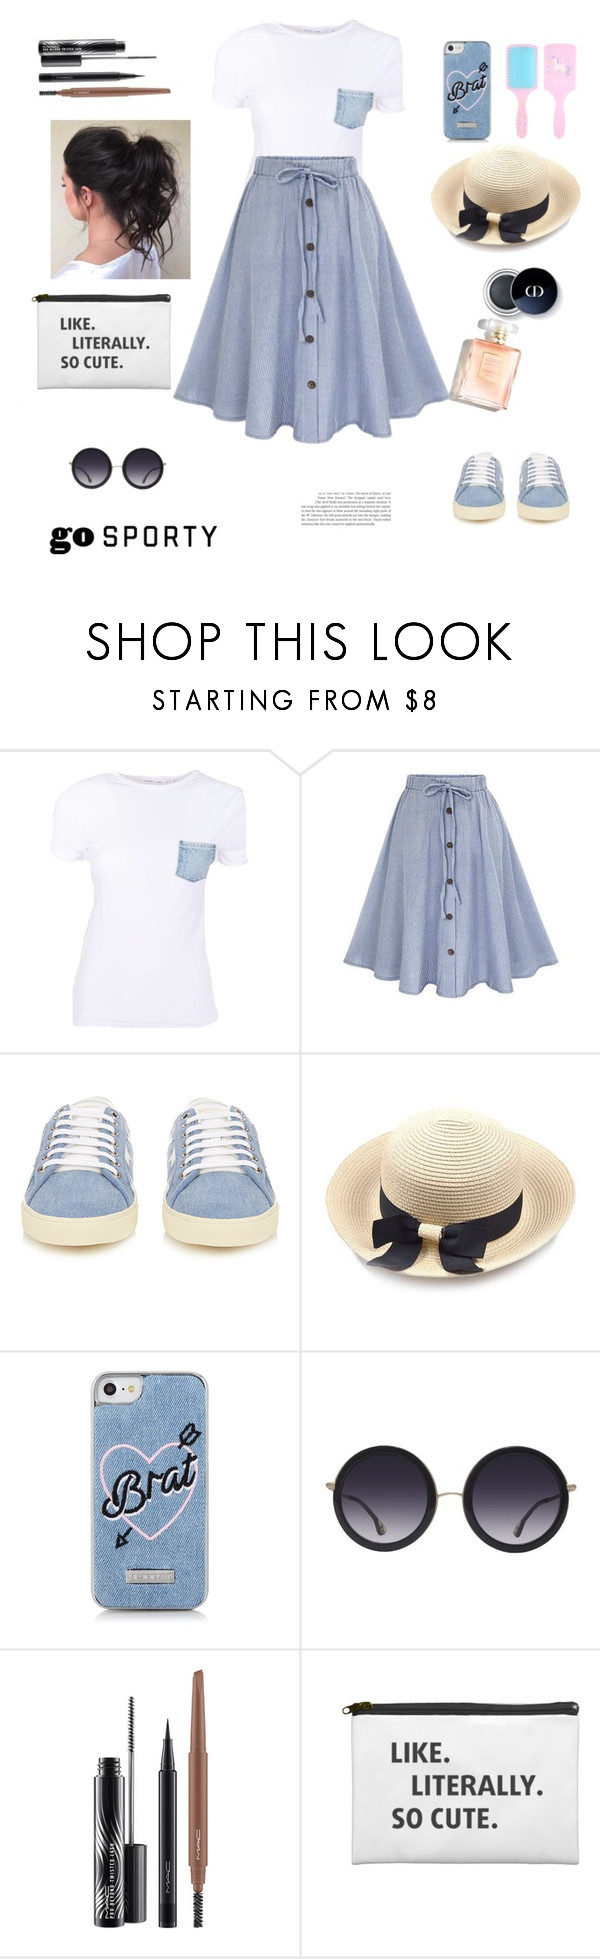 """""""Button"""" by ruptus ❤ liked on Polyvore featuring Helmut Lang, Yves Saint Laurent, Skinnydip, Alice + Olivia and MAC Cosmetics"""